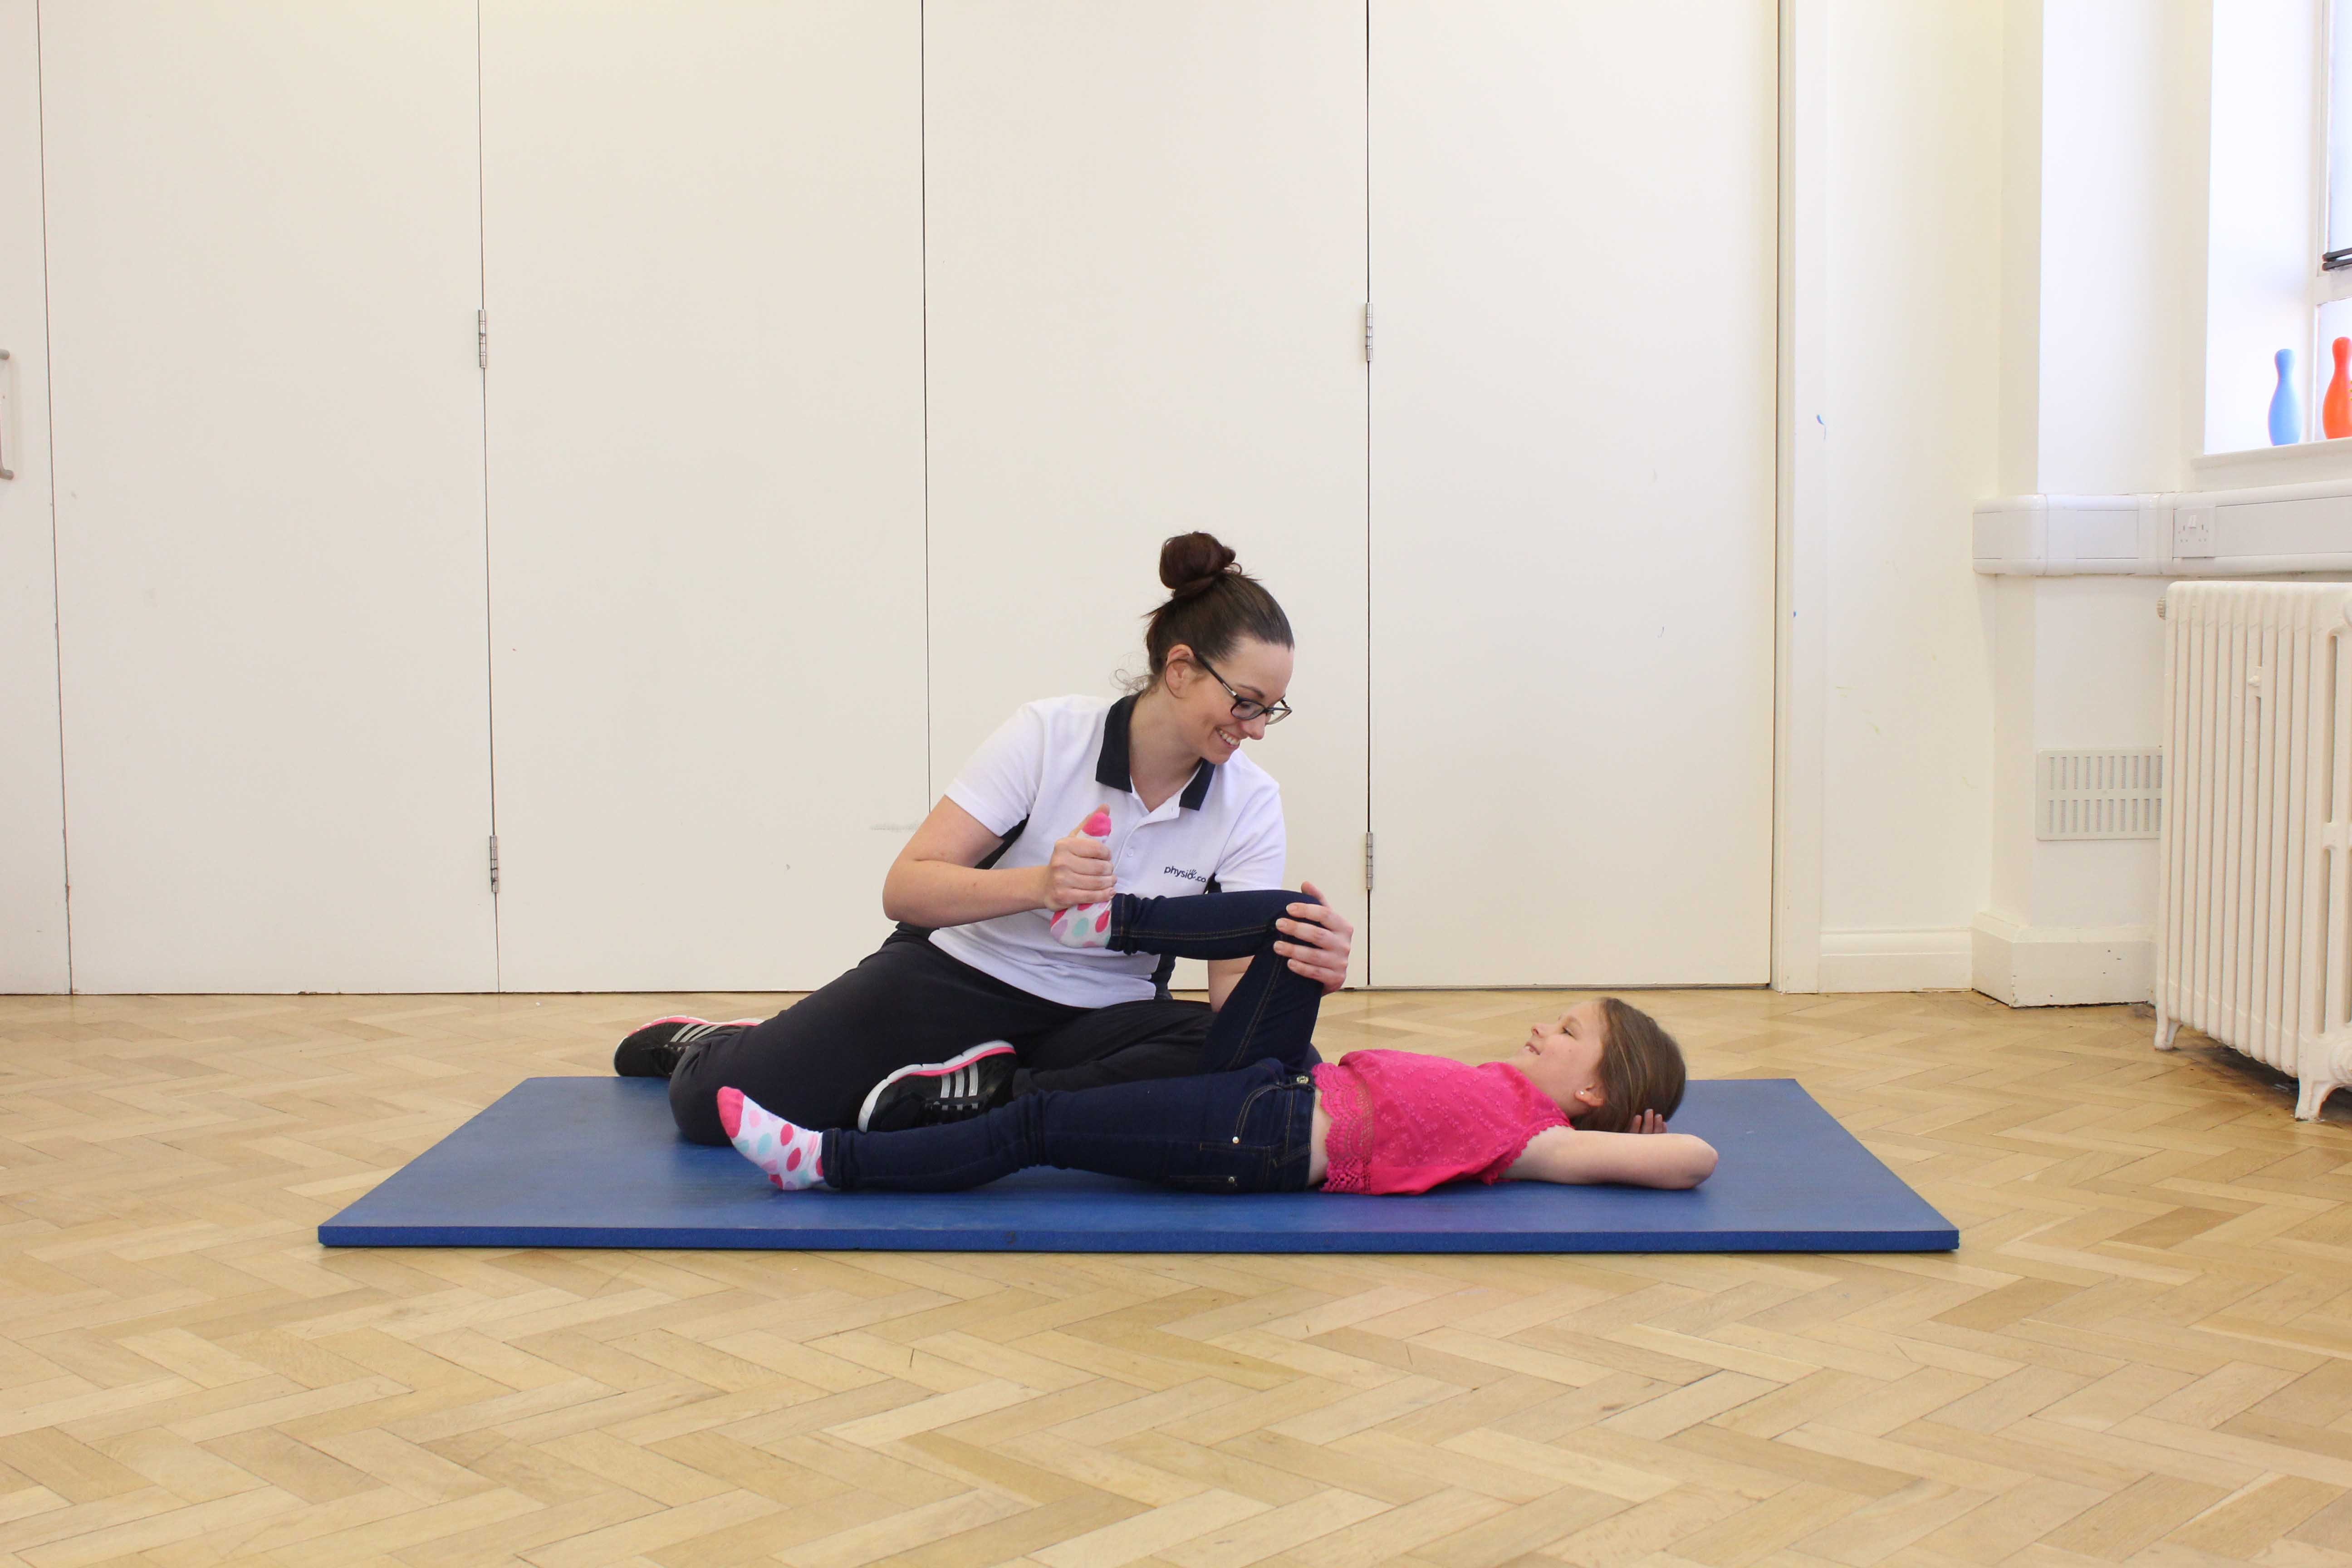 Upper limb mobility and co-ordination exercises assisted by a paediatric physiotherapist